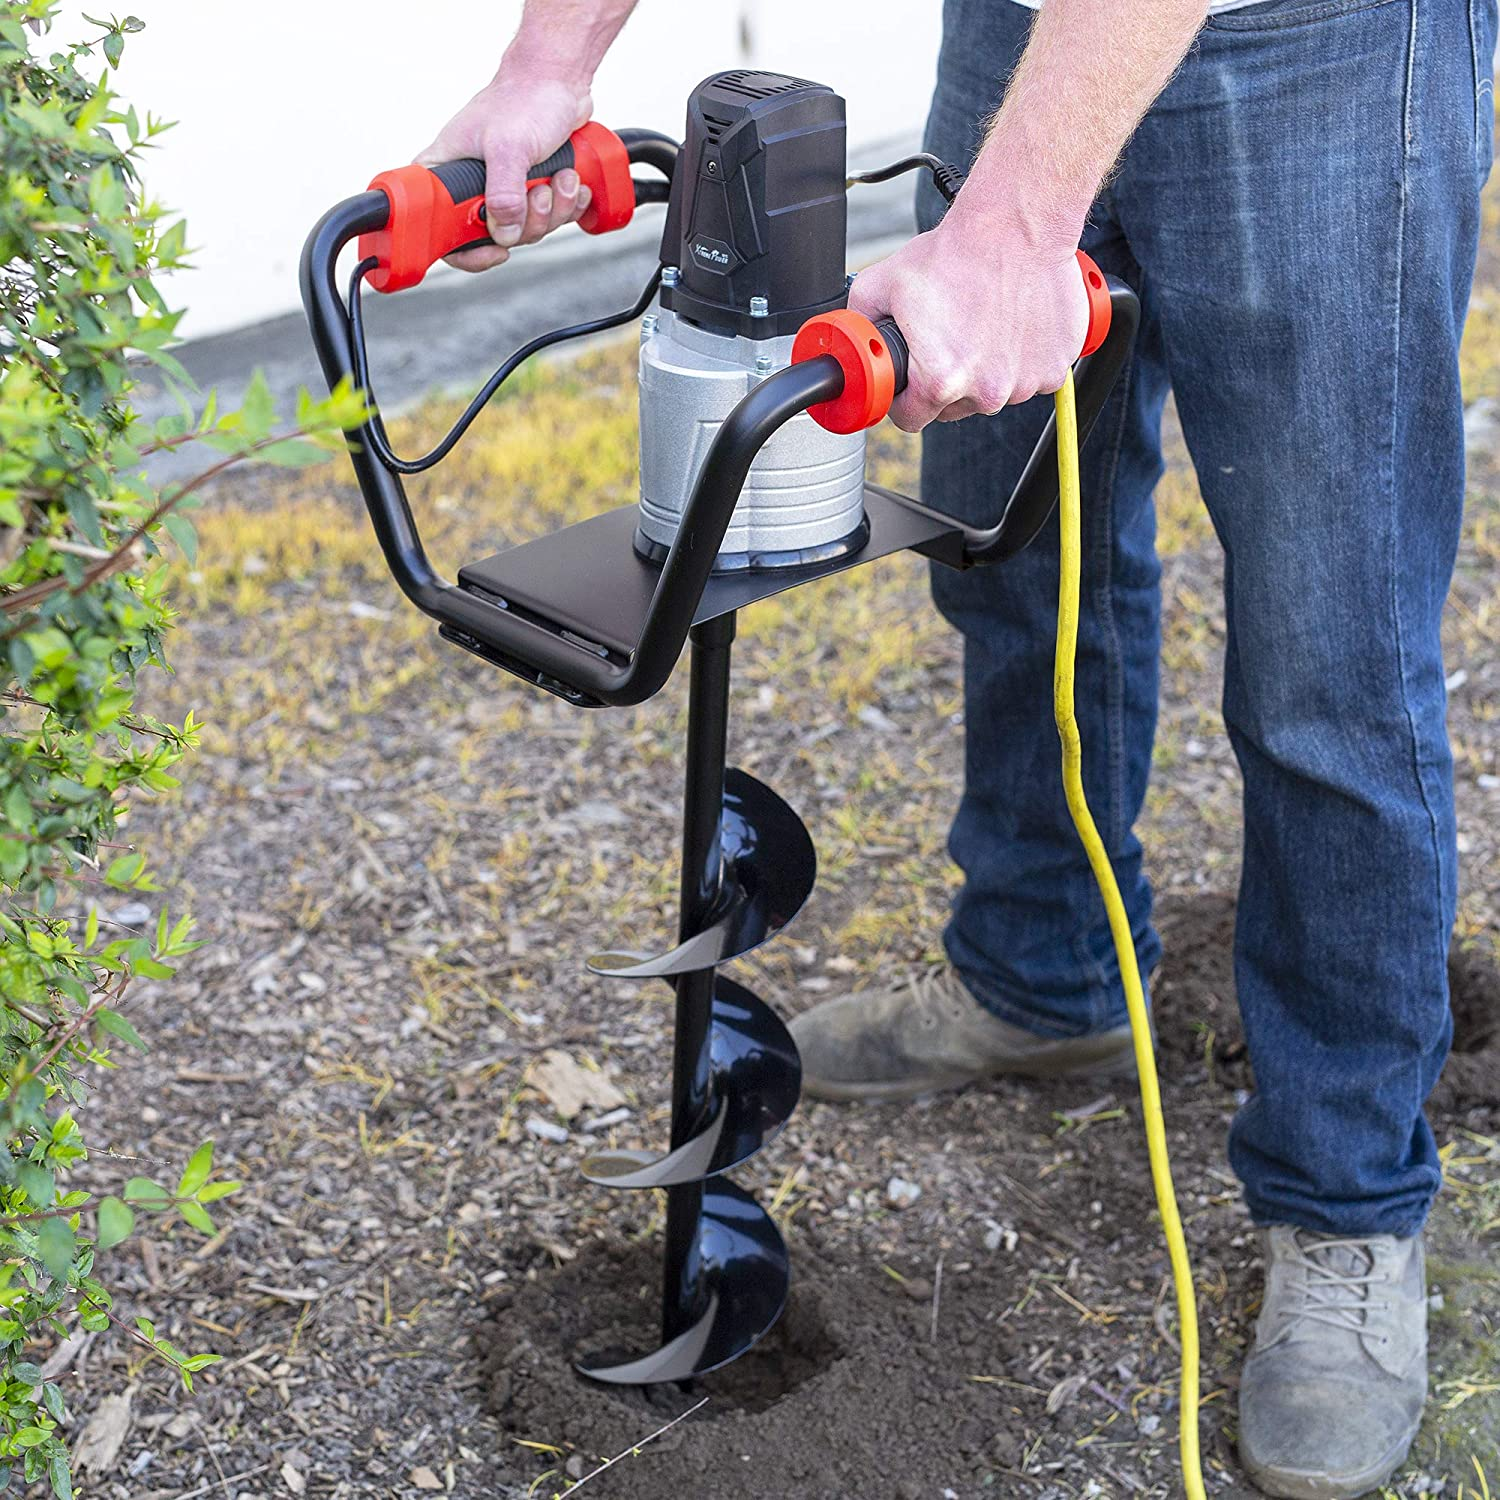 """XtremepowerUS 1500W Industrial Electric Post Hole Digger Fence Plant Soil Dig Powerhead Include 6"""" Digging Auger Bit Kit"""